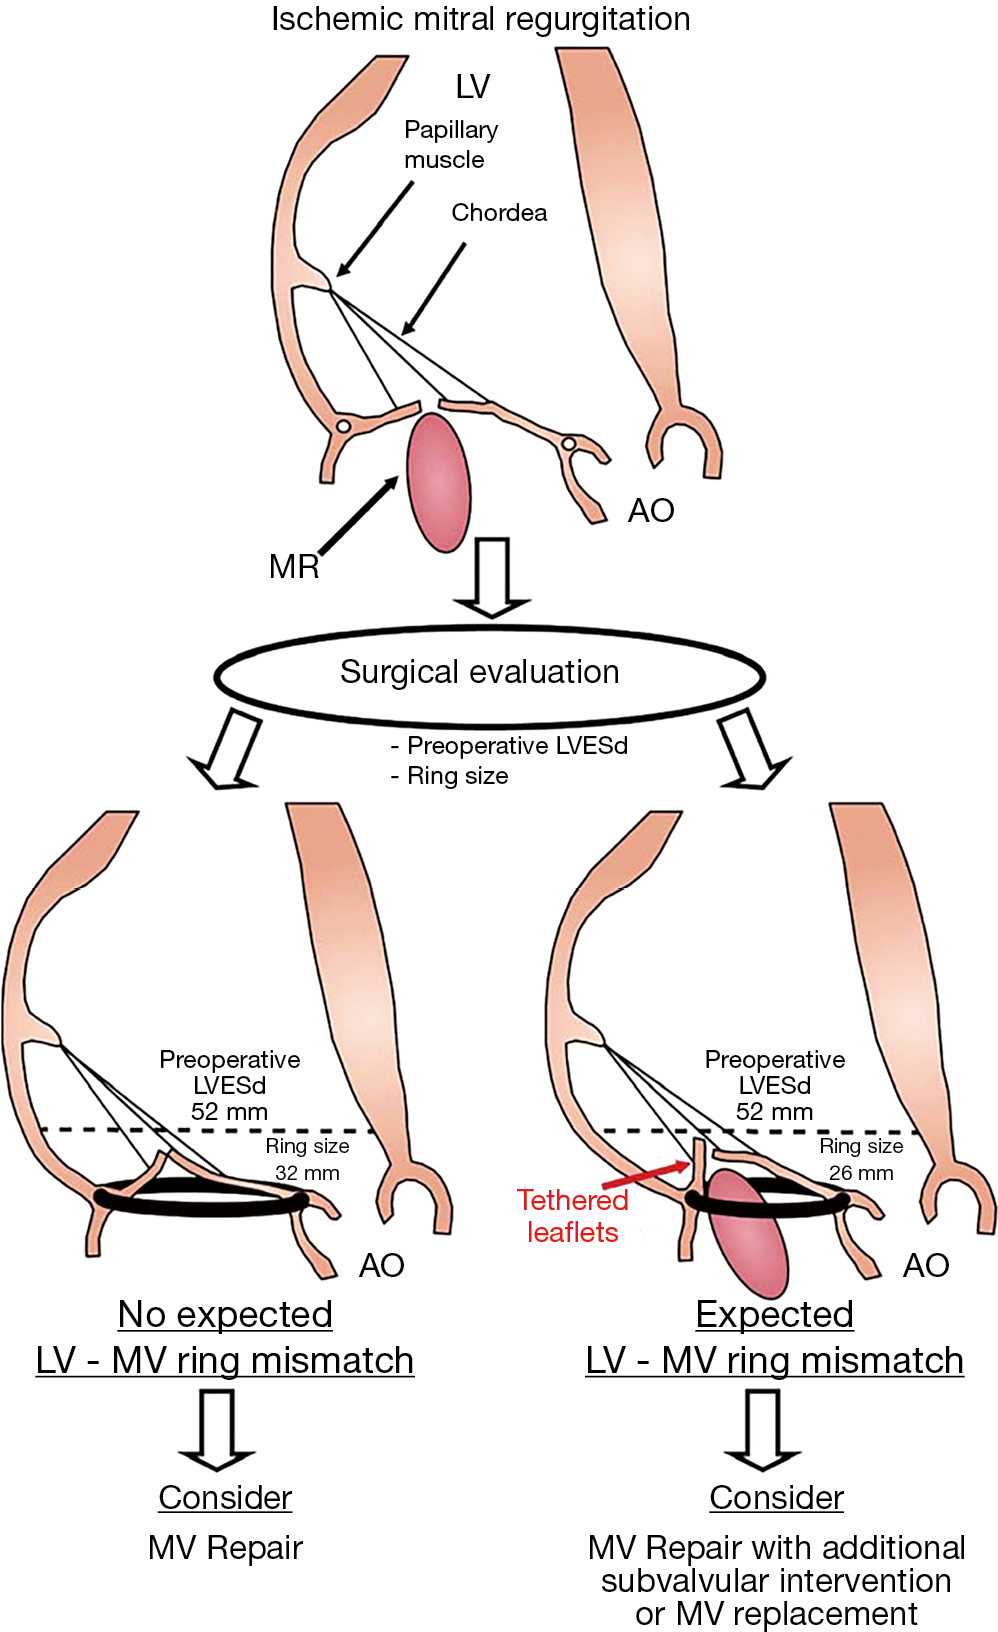 Multimodality imaging assessment of mitral valve anatomy in planning ...